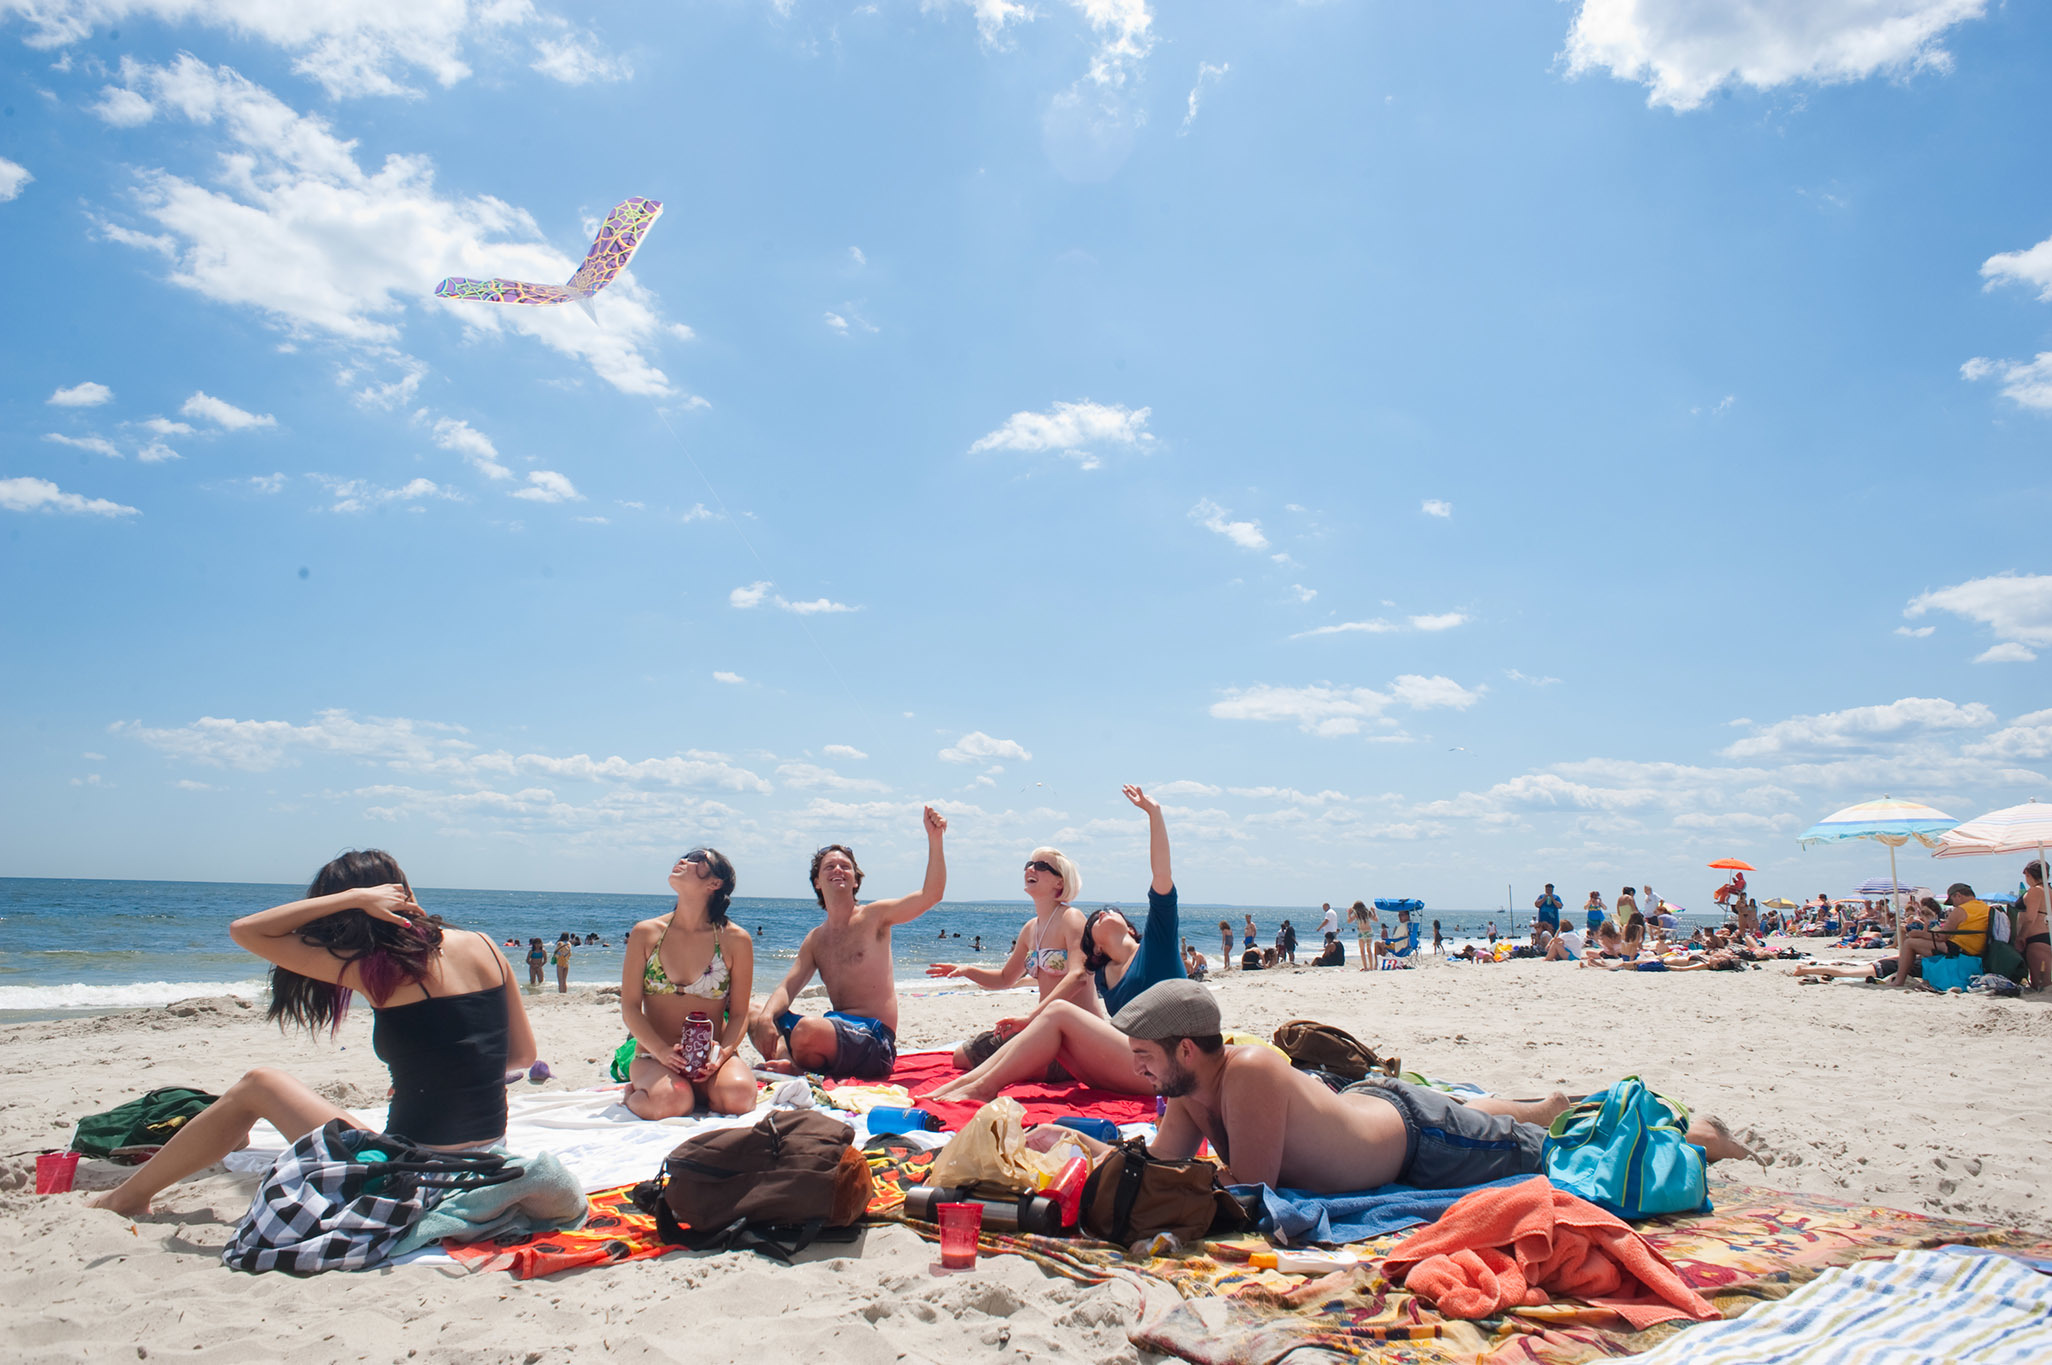 The 10 best beaches near NYC